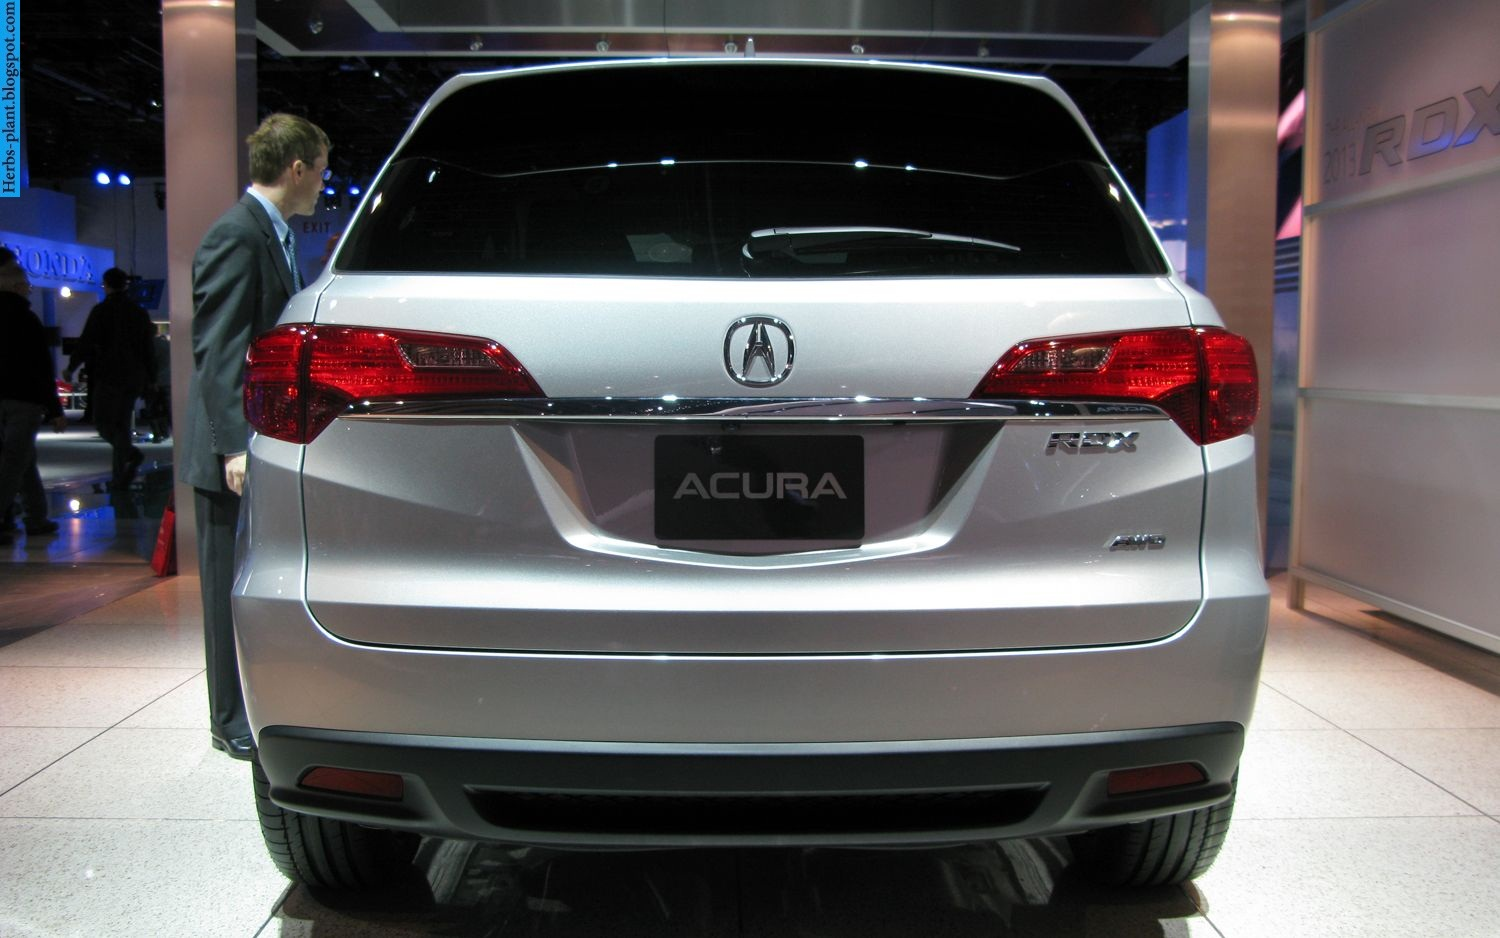 Acura rdx car 2013 exhaust - صور شكمان سيارة اكورا ار دي اكس 2013